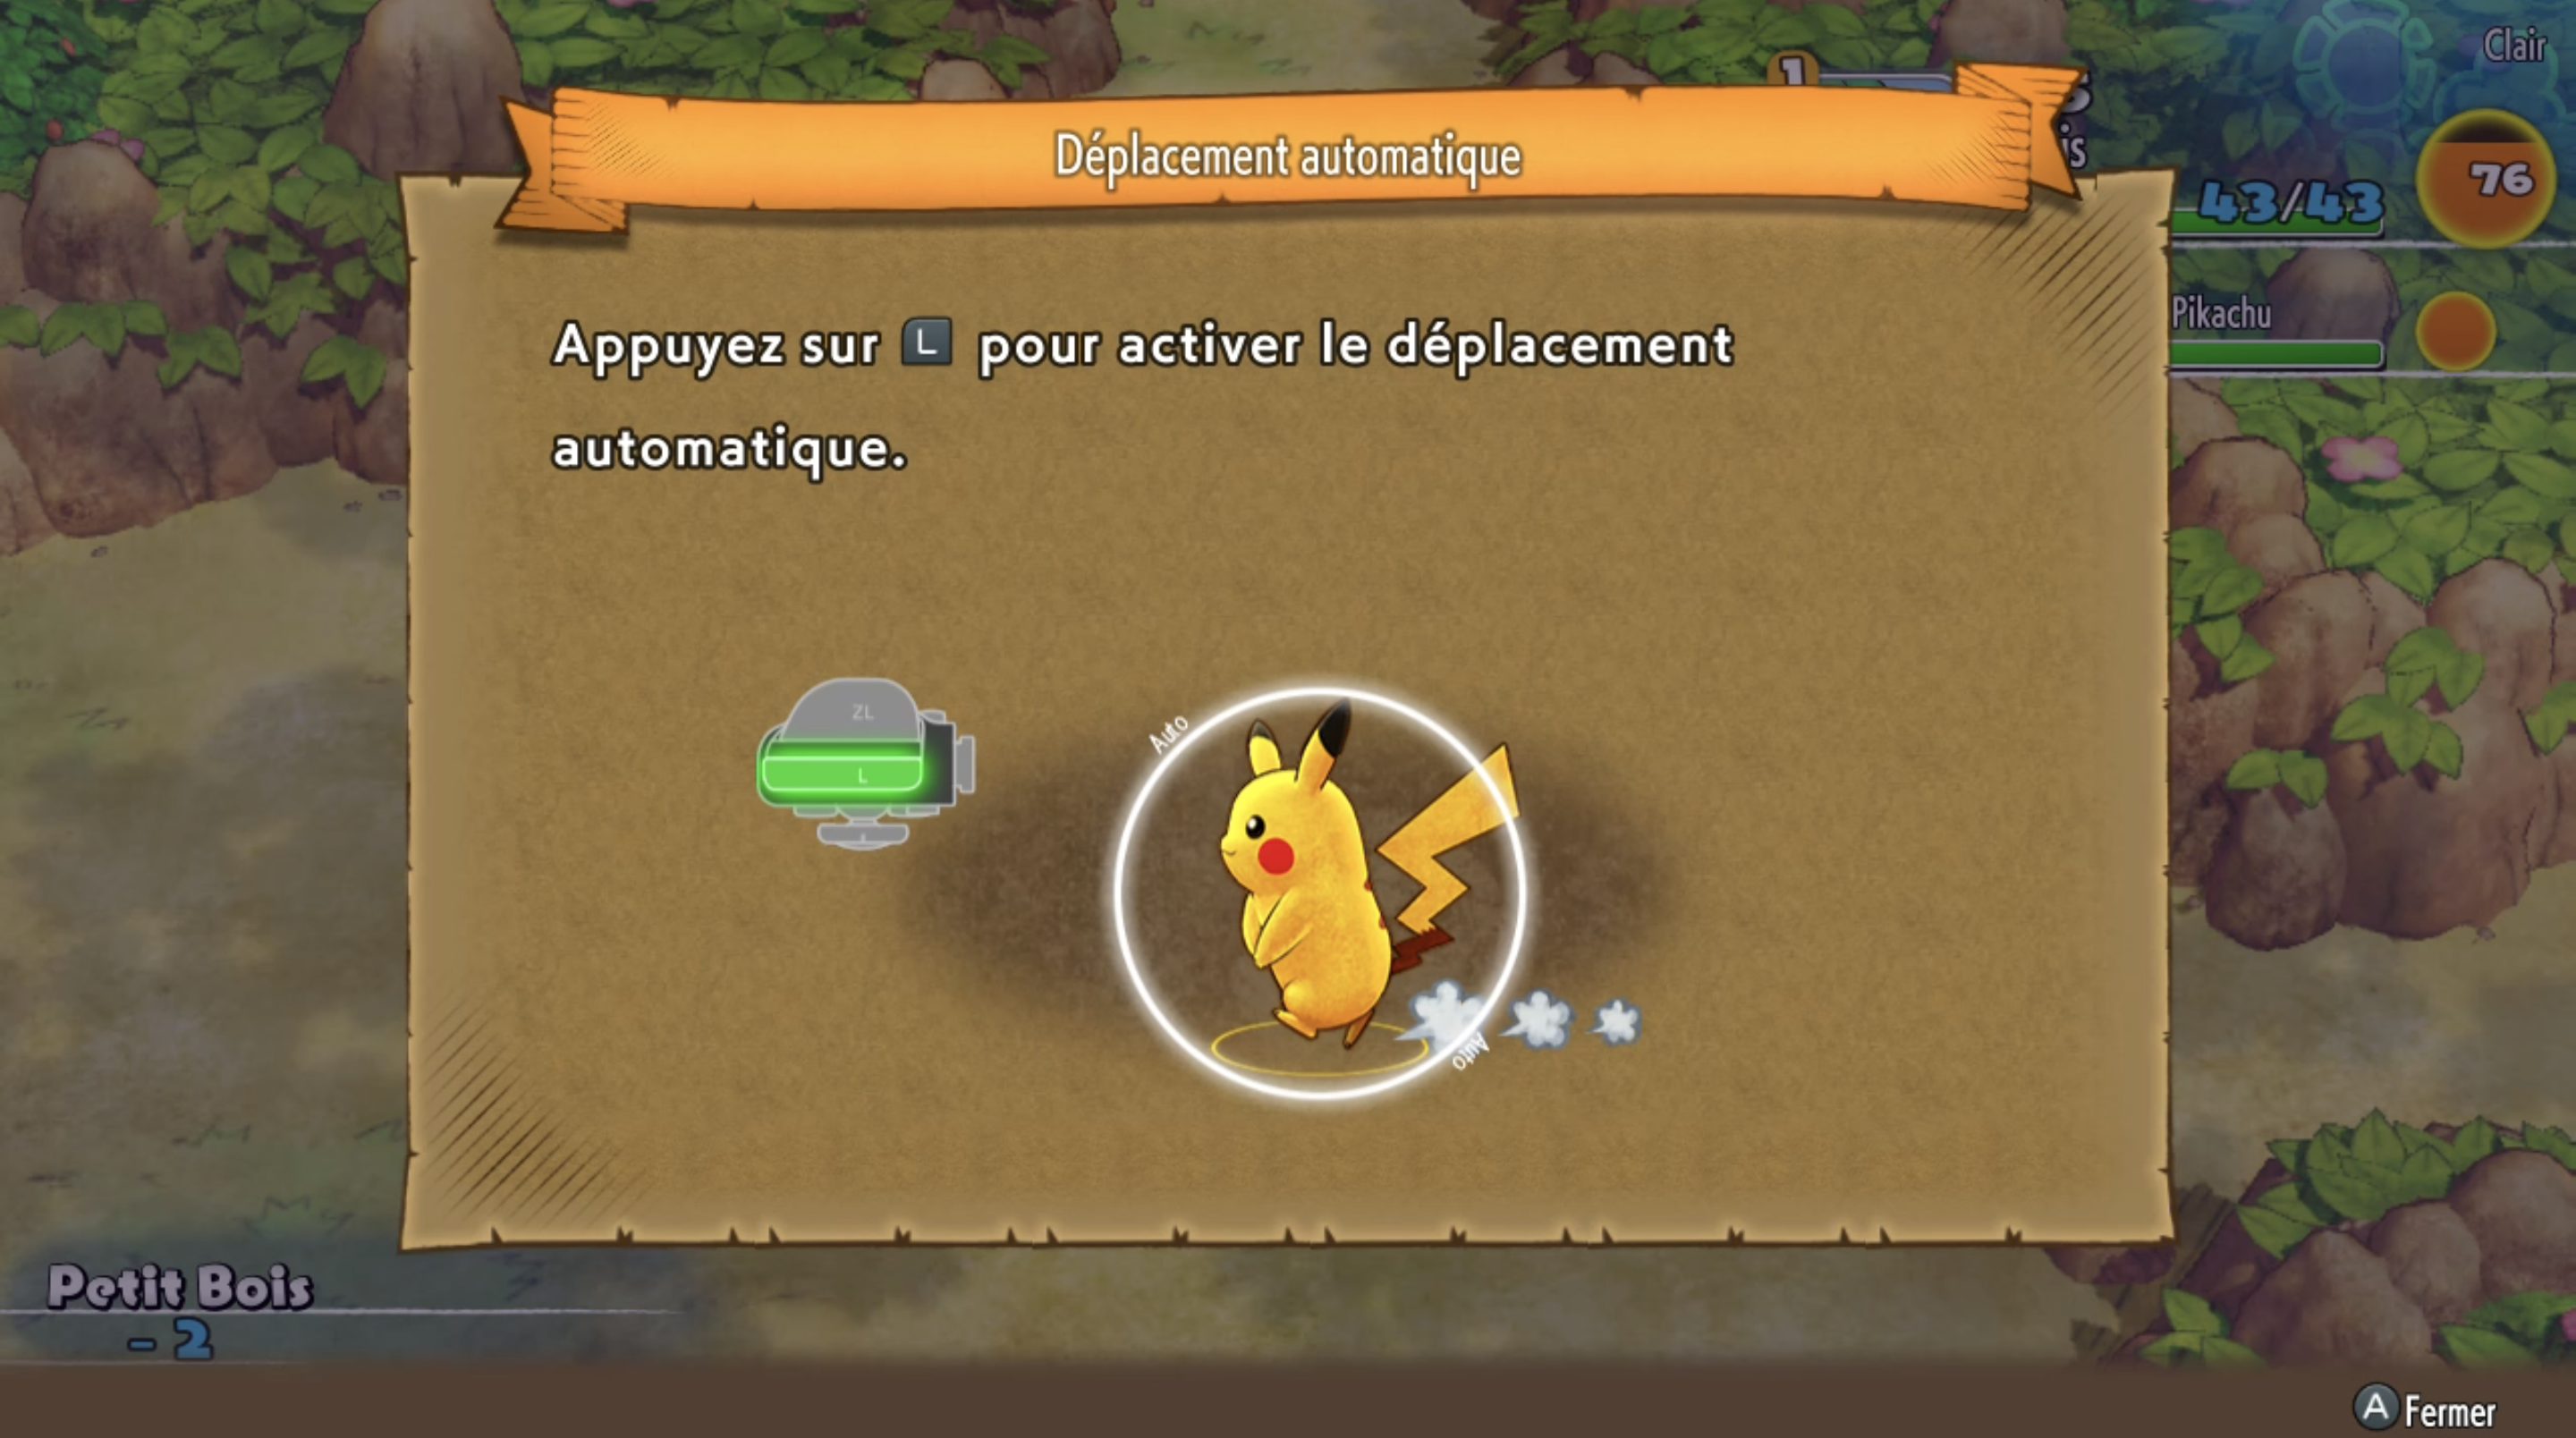 Pokémon Donjon Mystère Switch